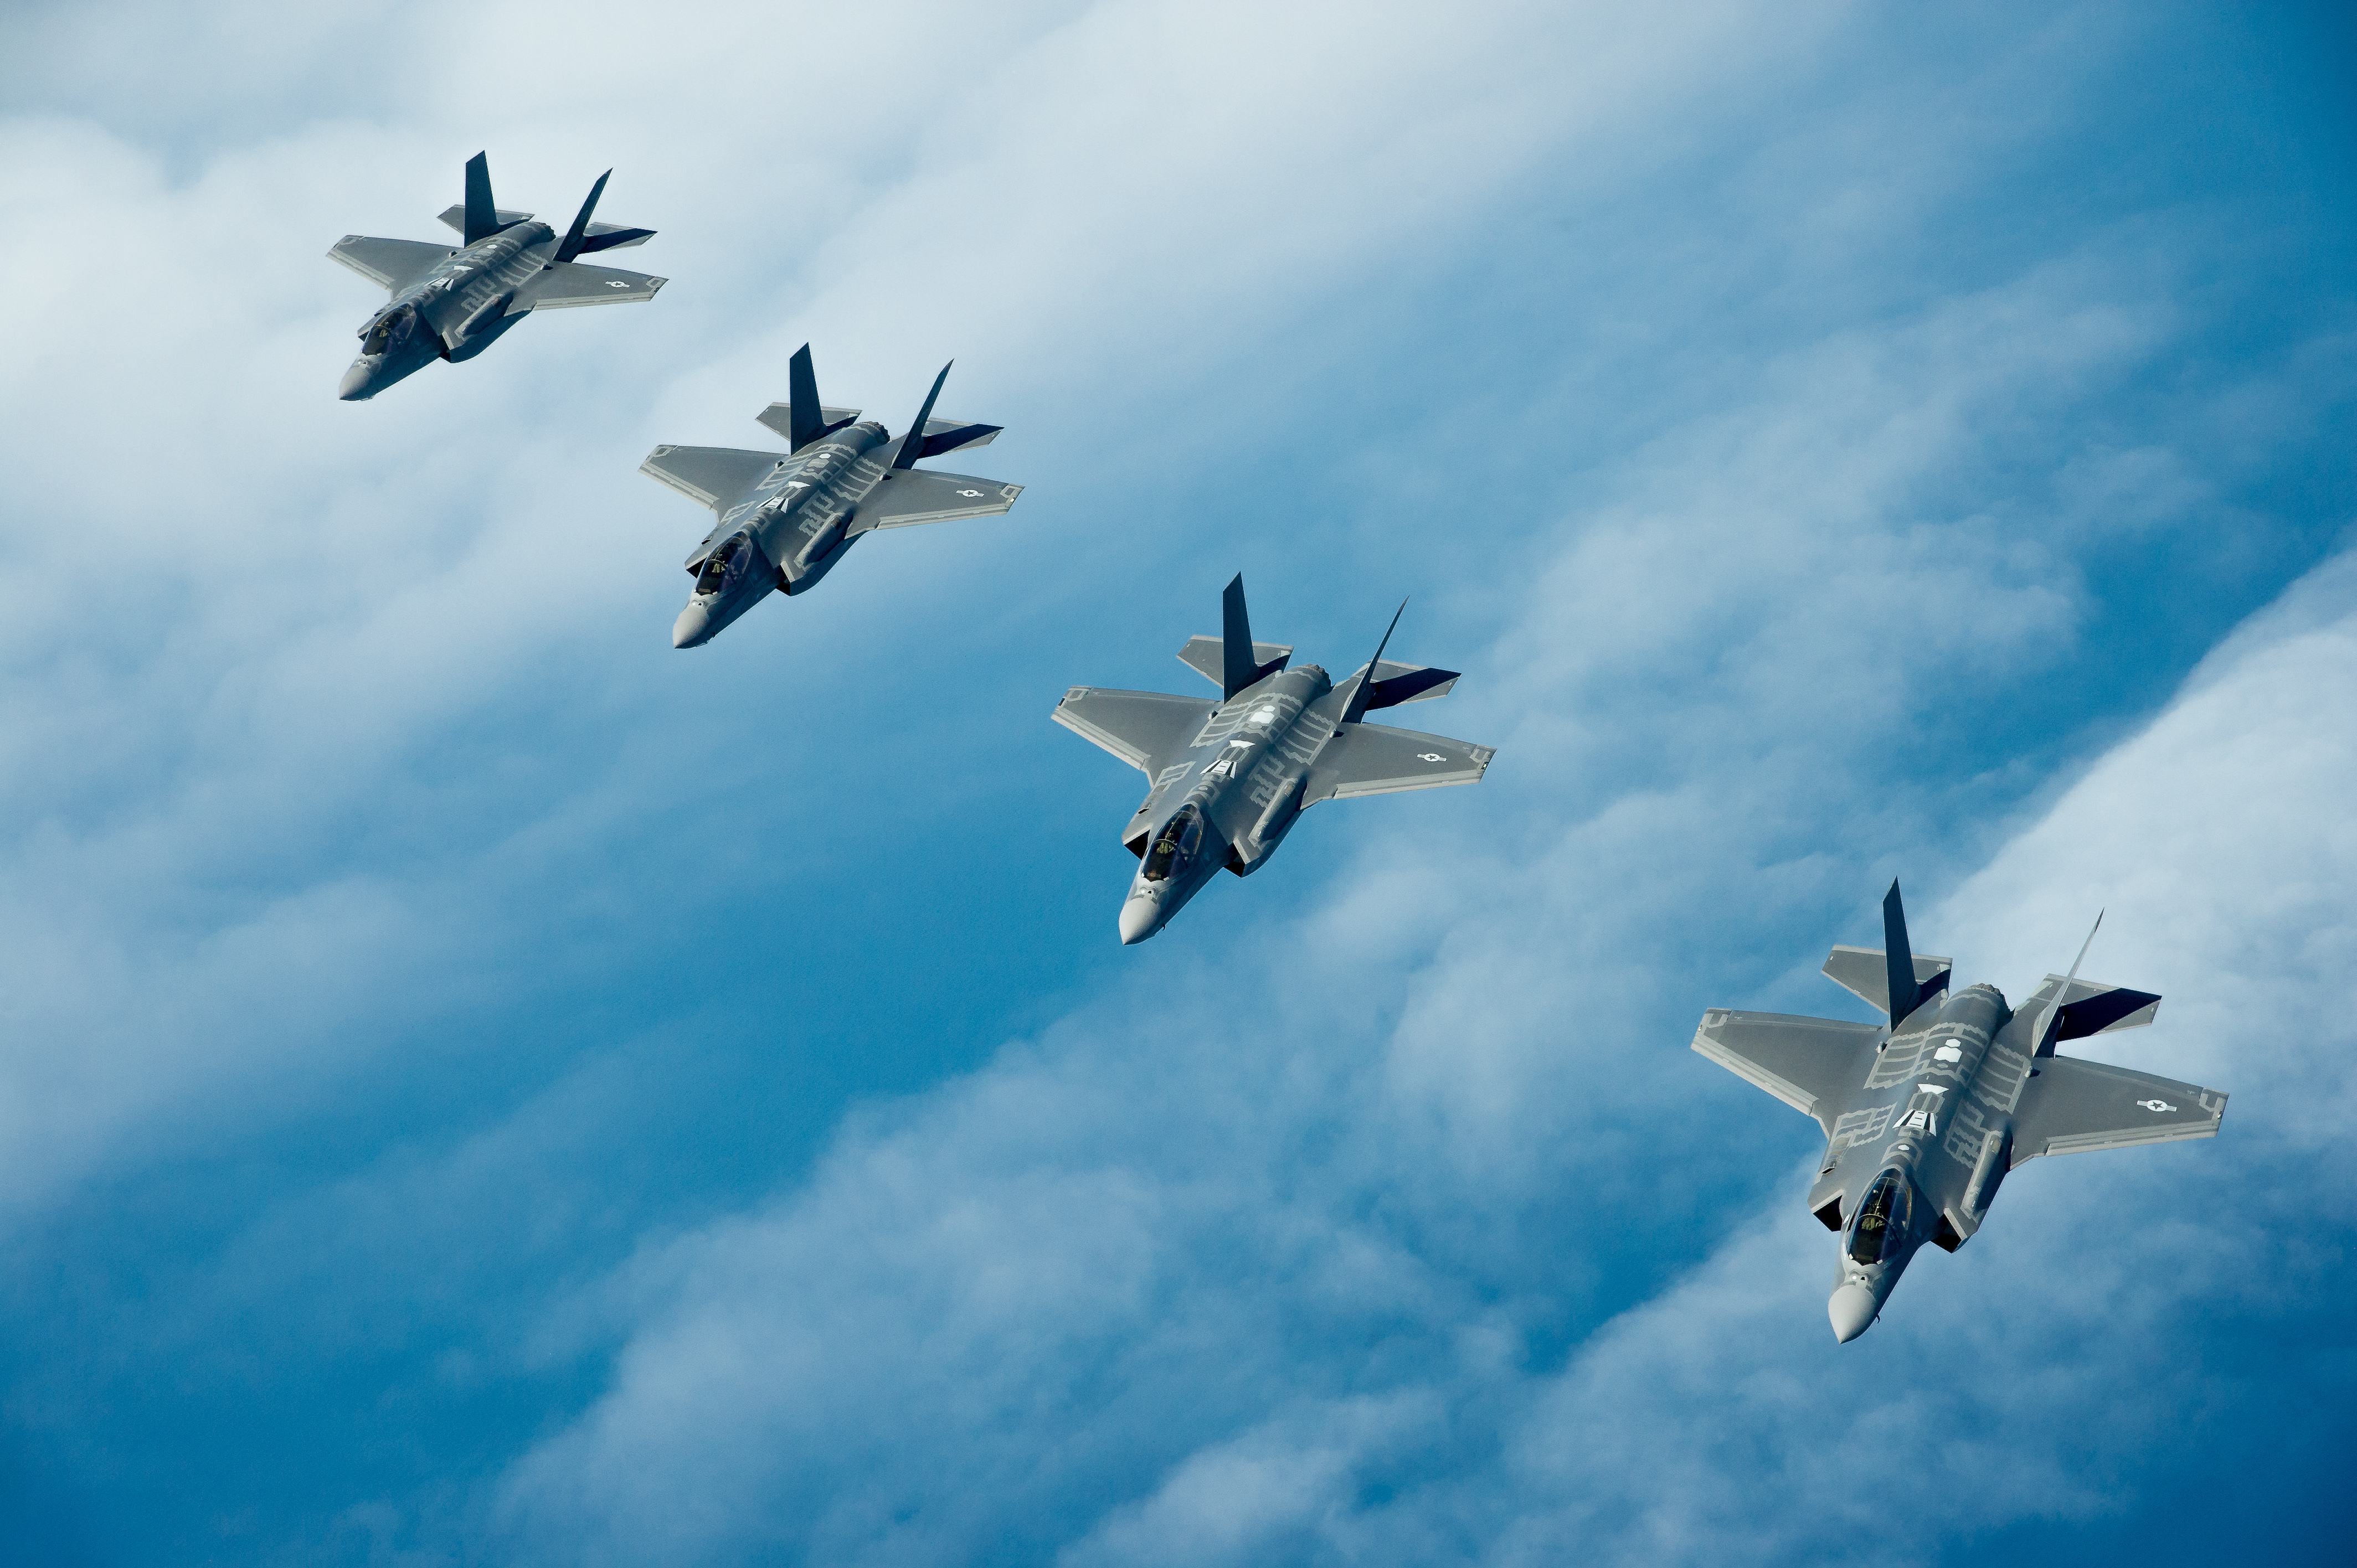 helicopter pilot training s with File U S  Air Force F 35a Lightning Ii Aircraft Assigned To The 58th Fighter Squadron  33rd Fighter Wing Fly In Formation Over The Northwest Coast Of Florida May 16  2013 130516 F Xl333 620 on Article besides File U S  Air Force F 35A Lightning II aircraft assigned to the 58th Fighter Squadron  33rd Fighter Wing fly in formation over the northwest coast of Florida May 16  2013 130516 F XL333 620 besides Robinson R22 besides Index in addition Moonraker.